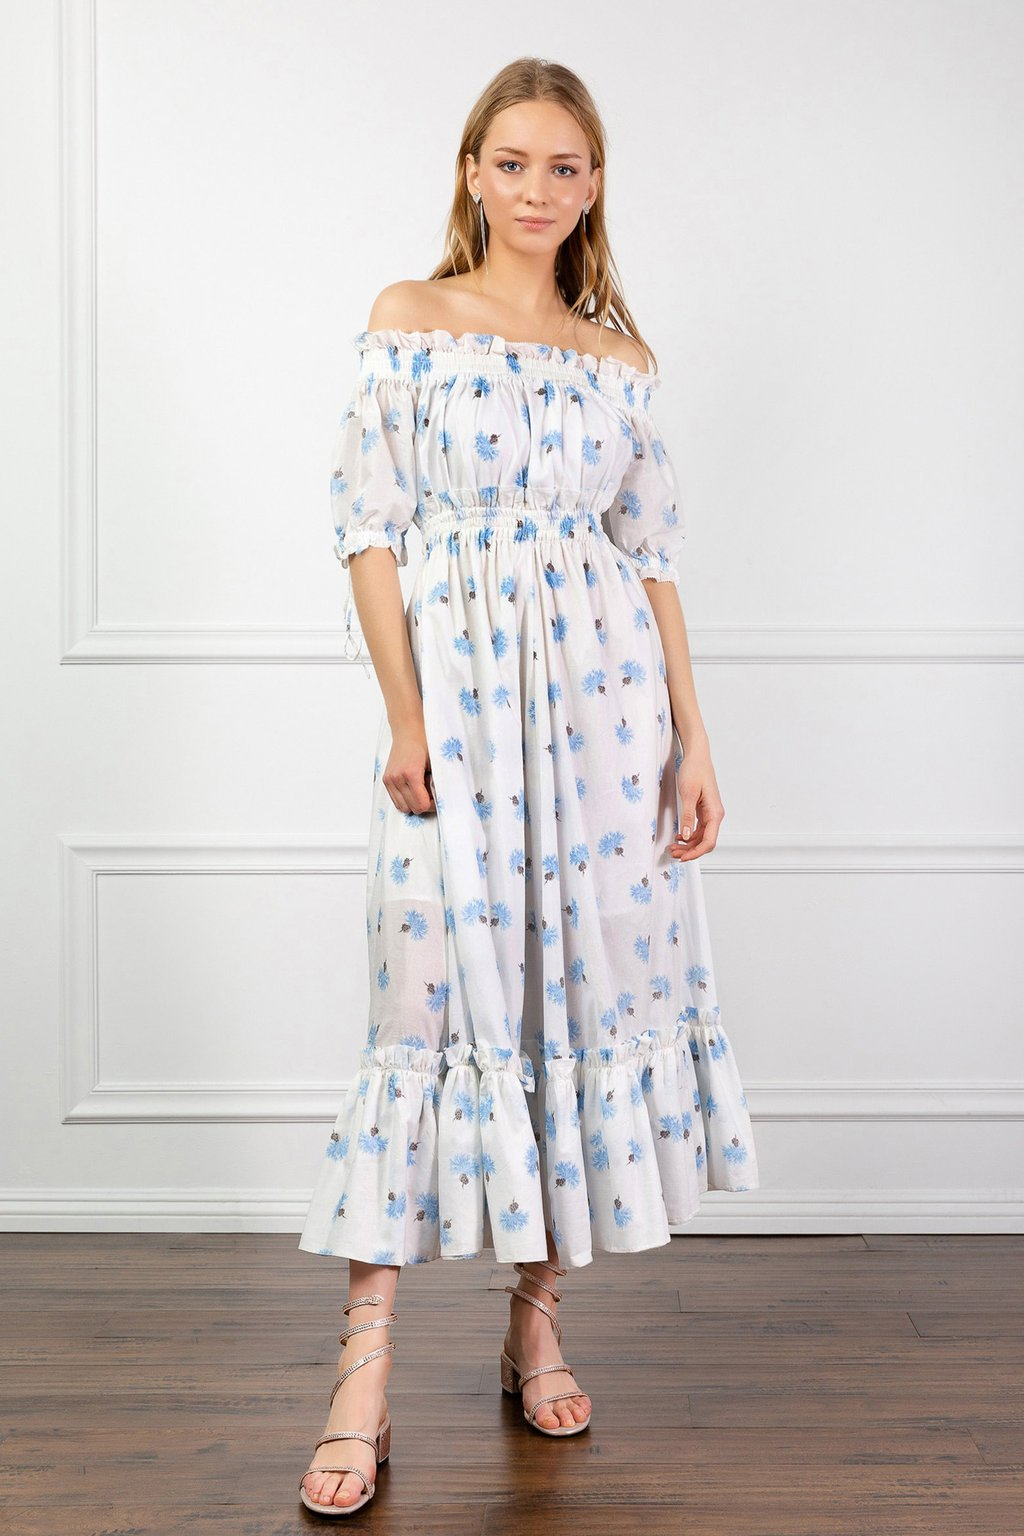 Floral Phoebe Dress by J.ING